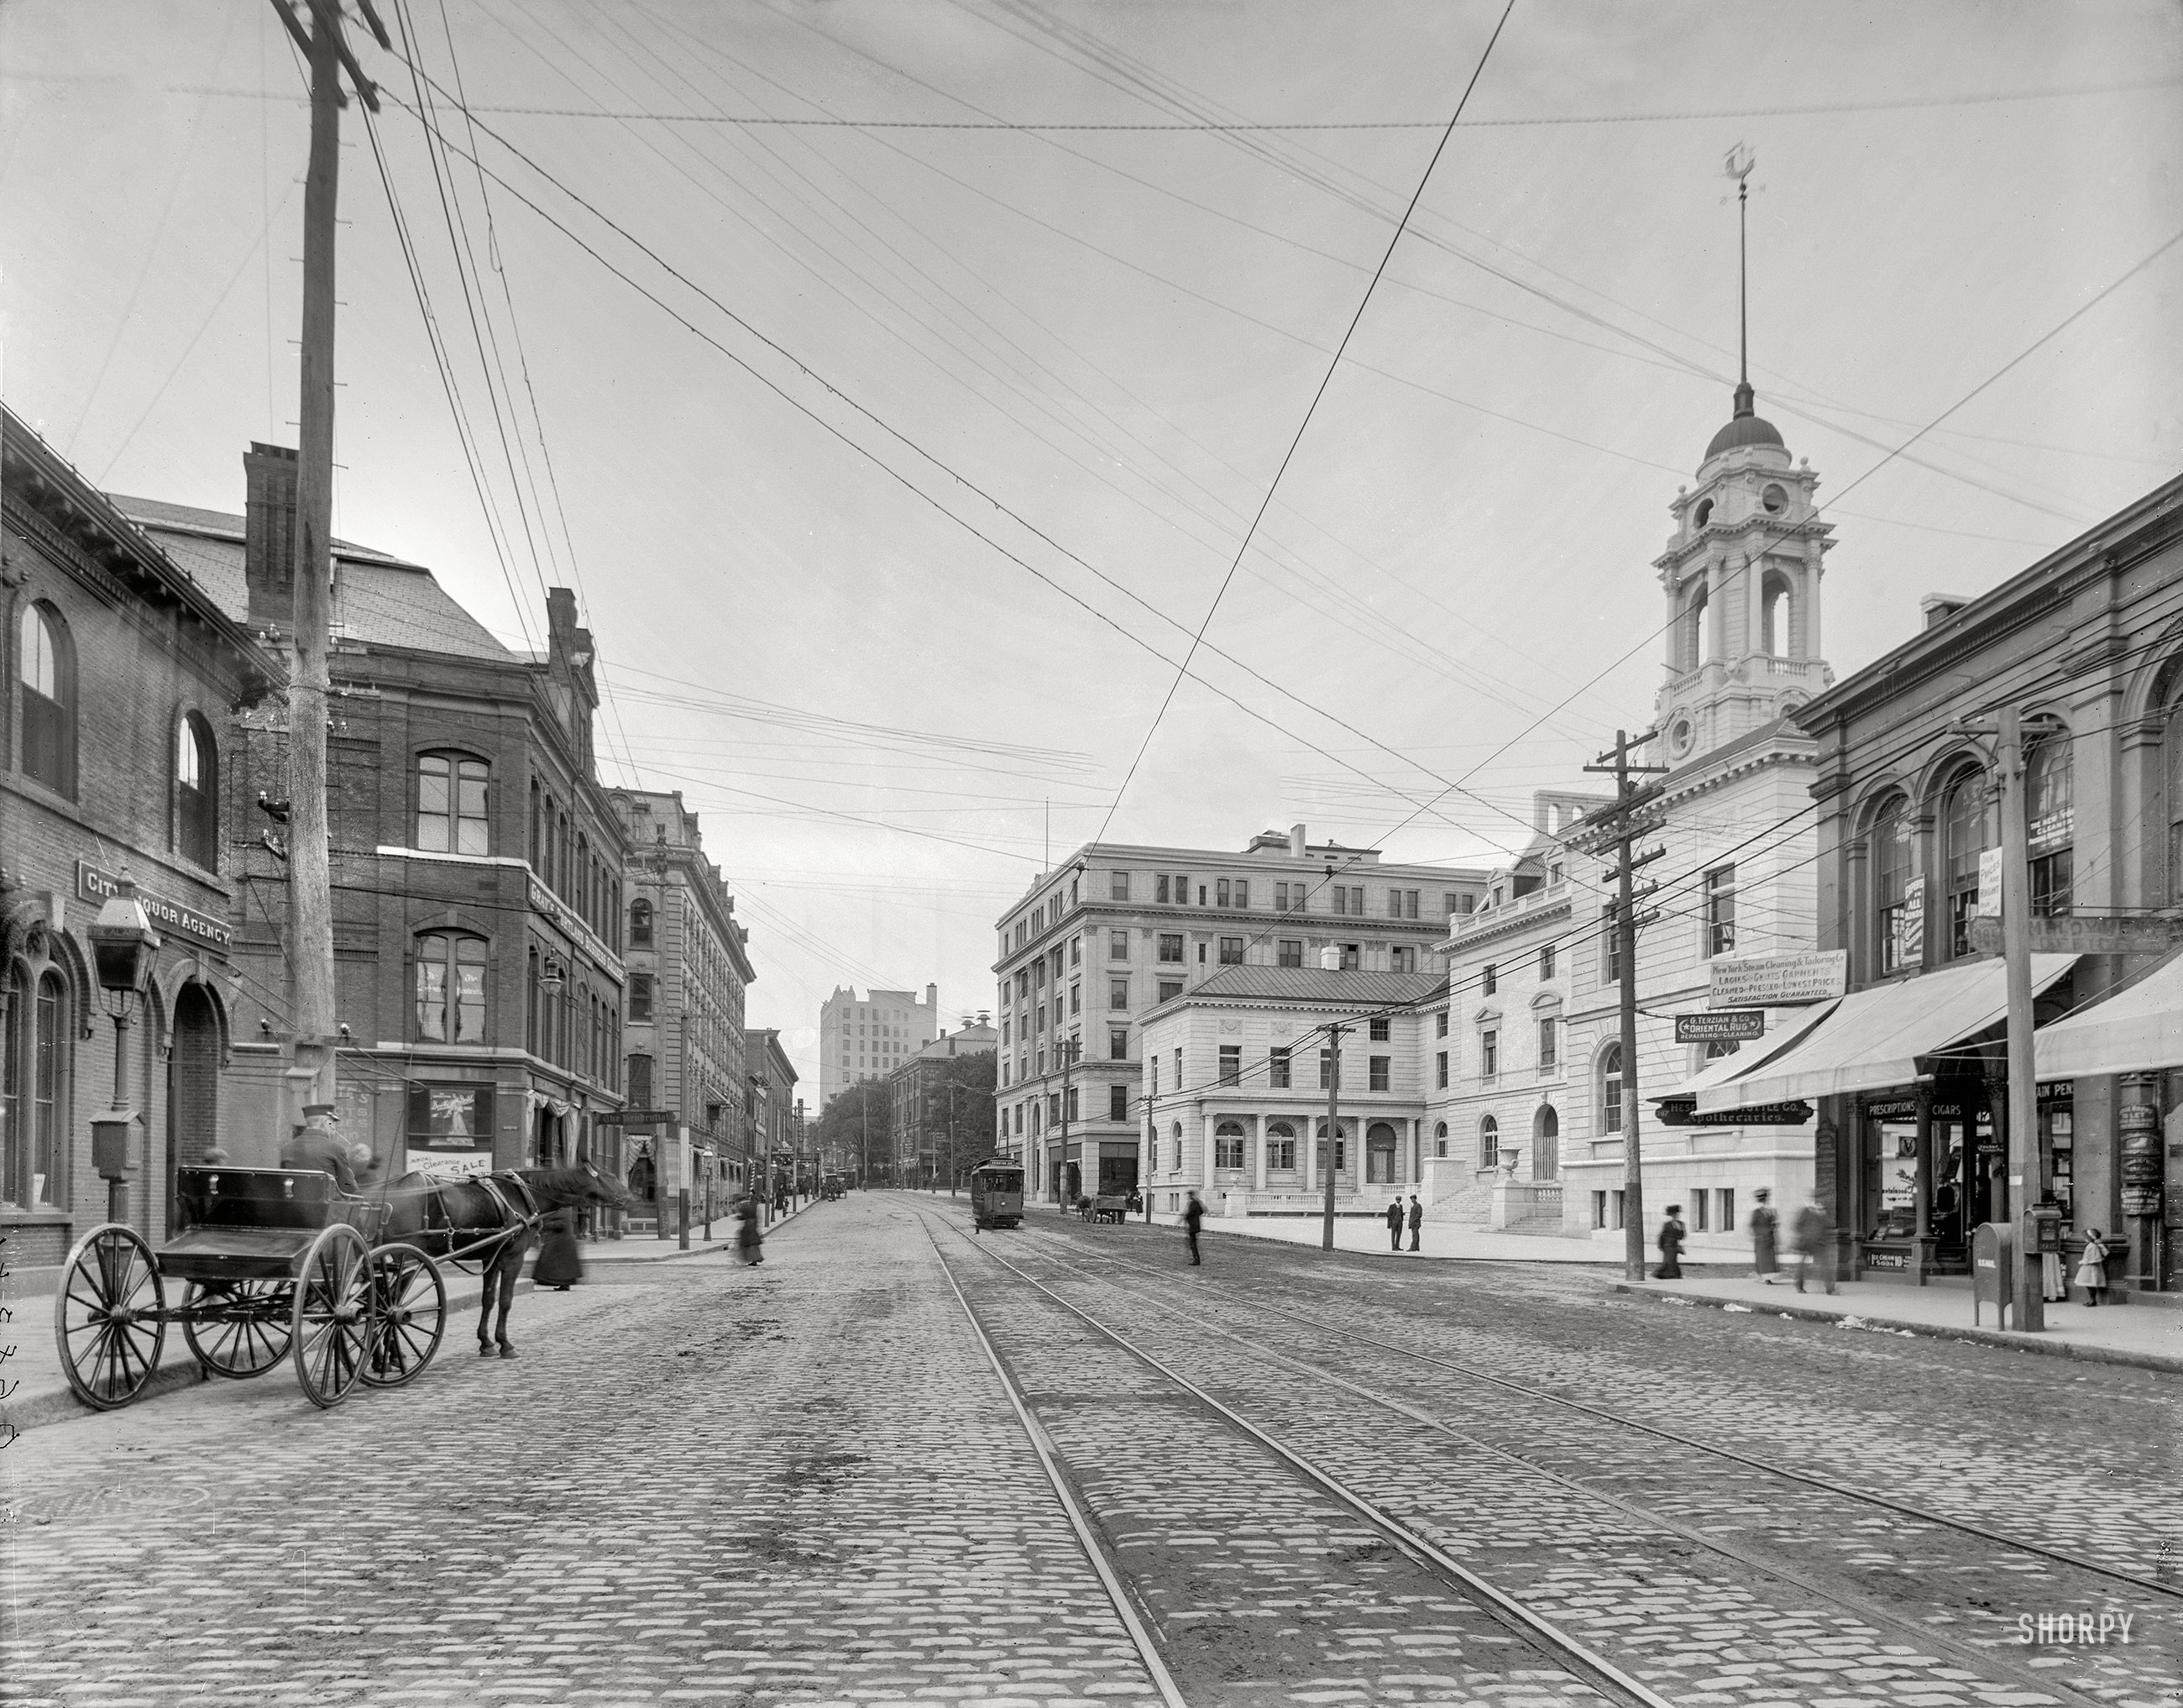 Shorpy Historic Picture Archive Congress Street 1909